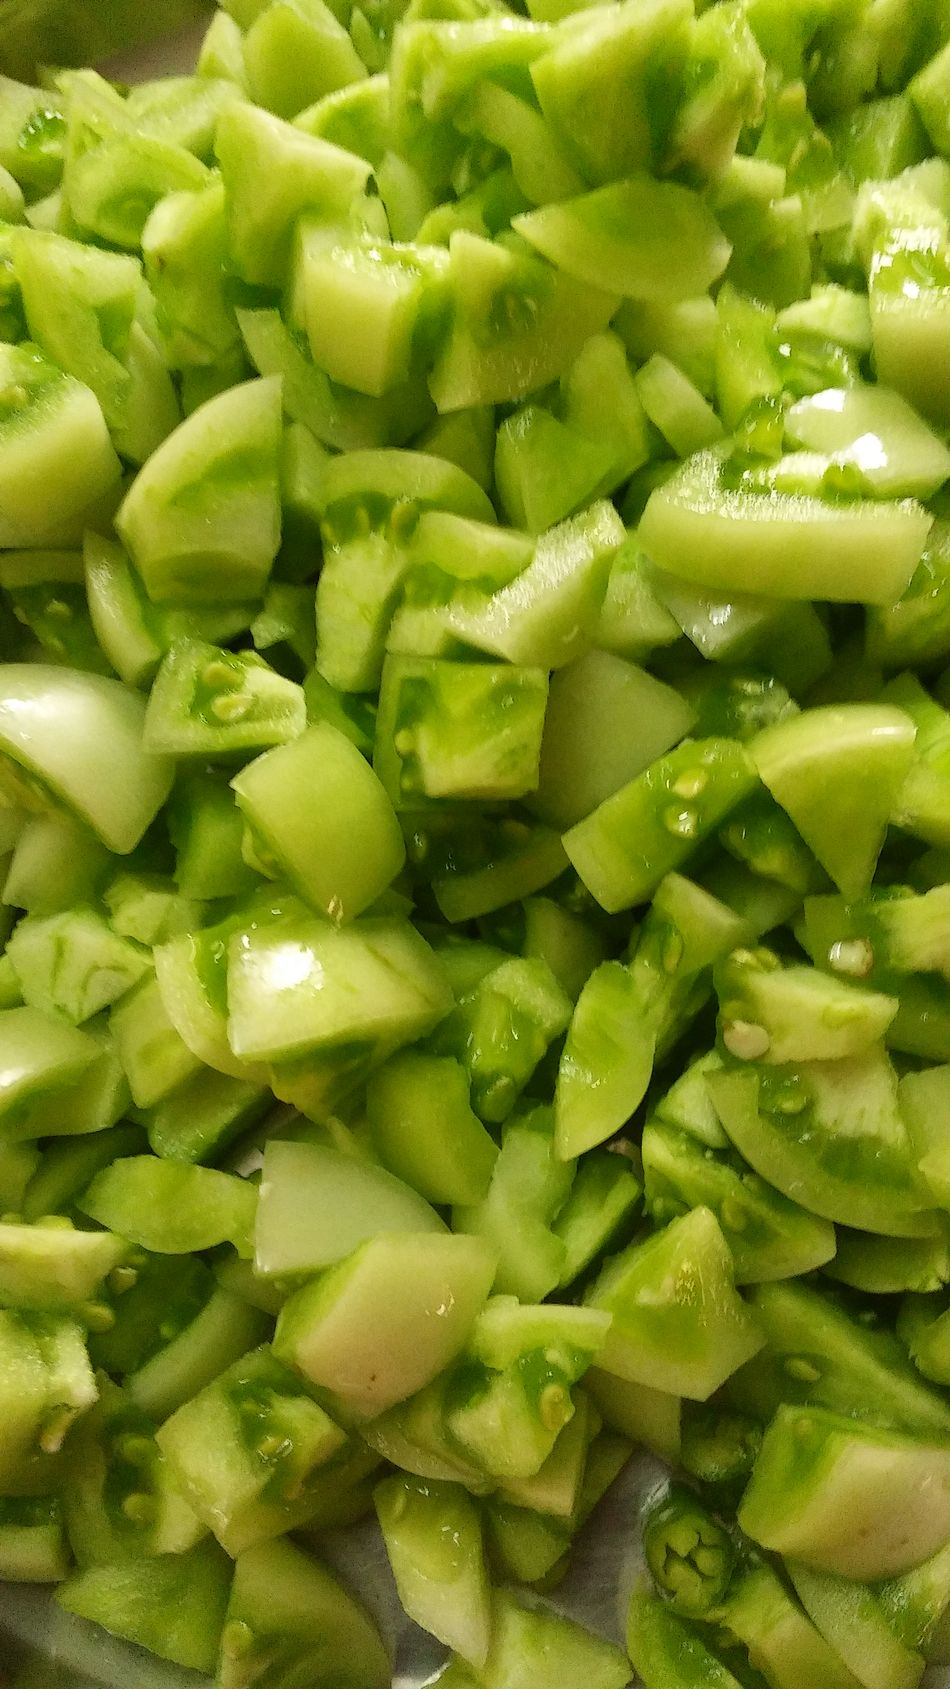 Green Color Food Backgrounds Food And Drink Healthy Eating No People Freshness Full Frame Close-up Day Skinny Tomatoes Unpeeled Tomatoes Tomatoes With Seeds Green Tomatoes Raw Tomatoes Chopped Chopped Raw Tomatoes Freshness Green Color Hand Cutting Hand Work Indoor